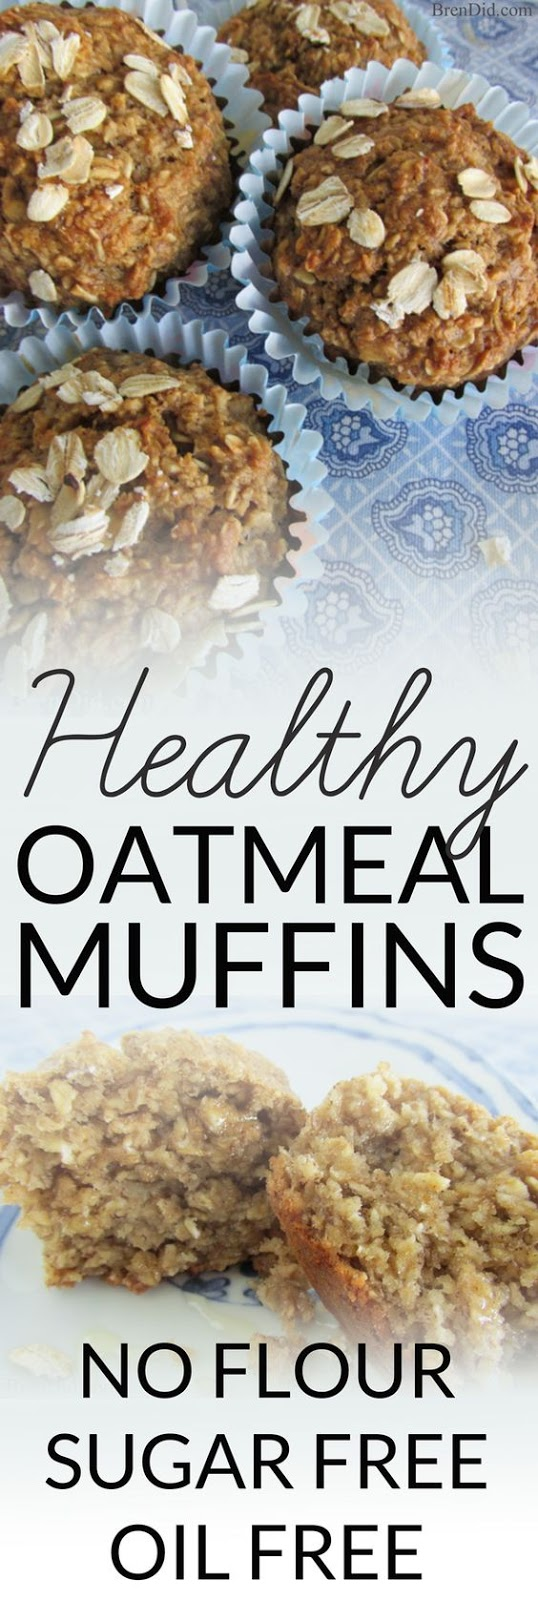 NO FLOUR, SUGAR FREE, OIL FREE HEALTHY OATMEAL MUFFINS RECIPE